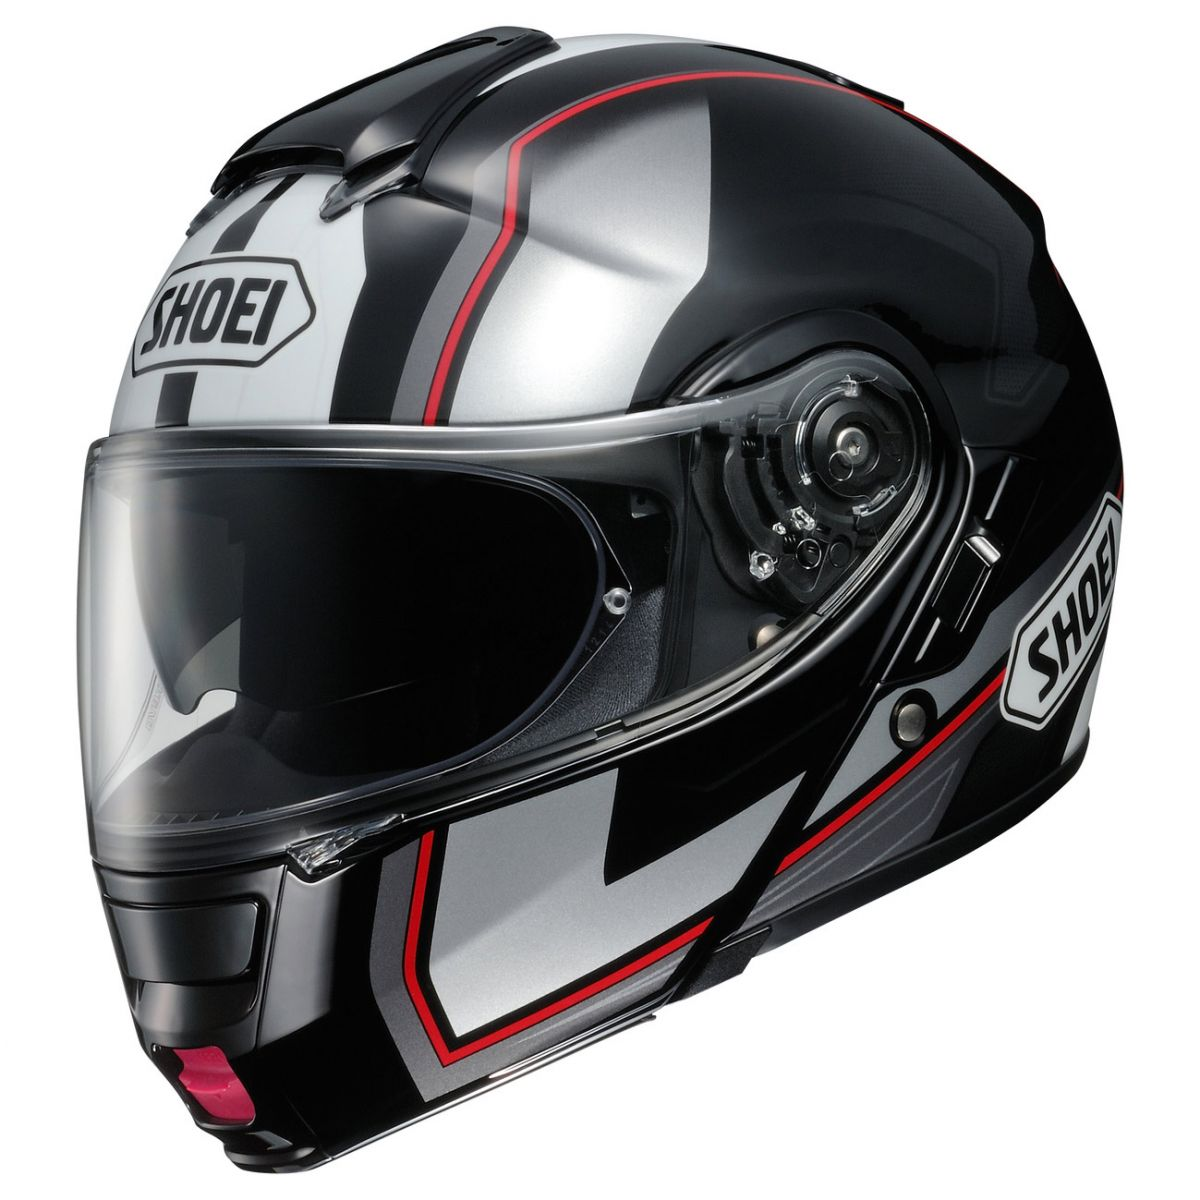 Capacete Shoei Neotec Imminent TC-5 Escamoteável - SUPEROFERTA!